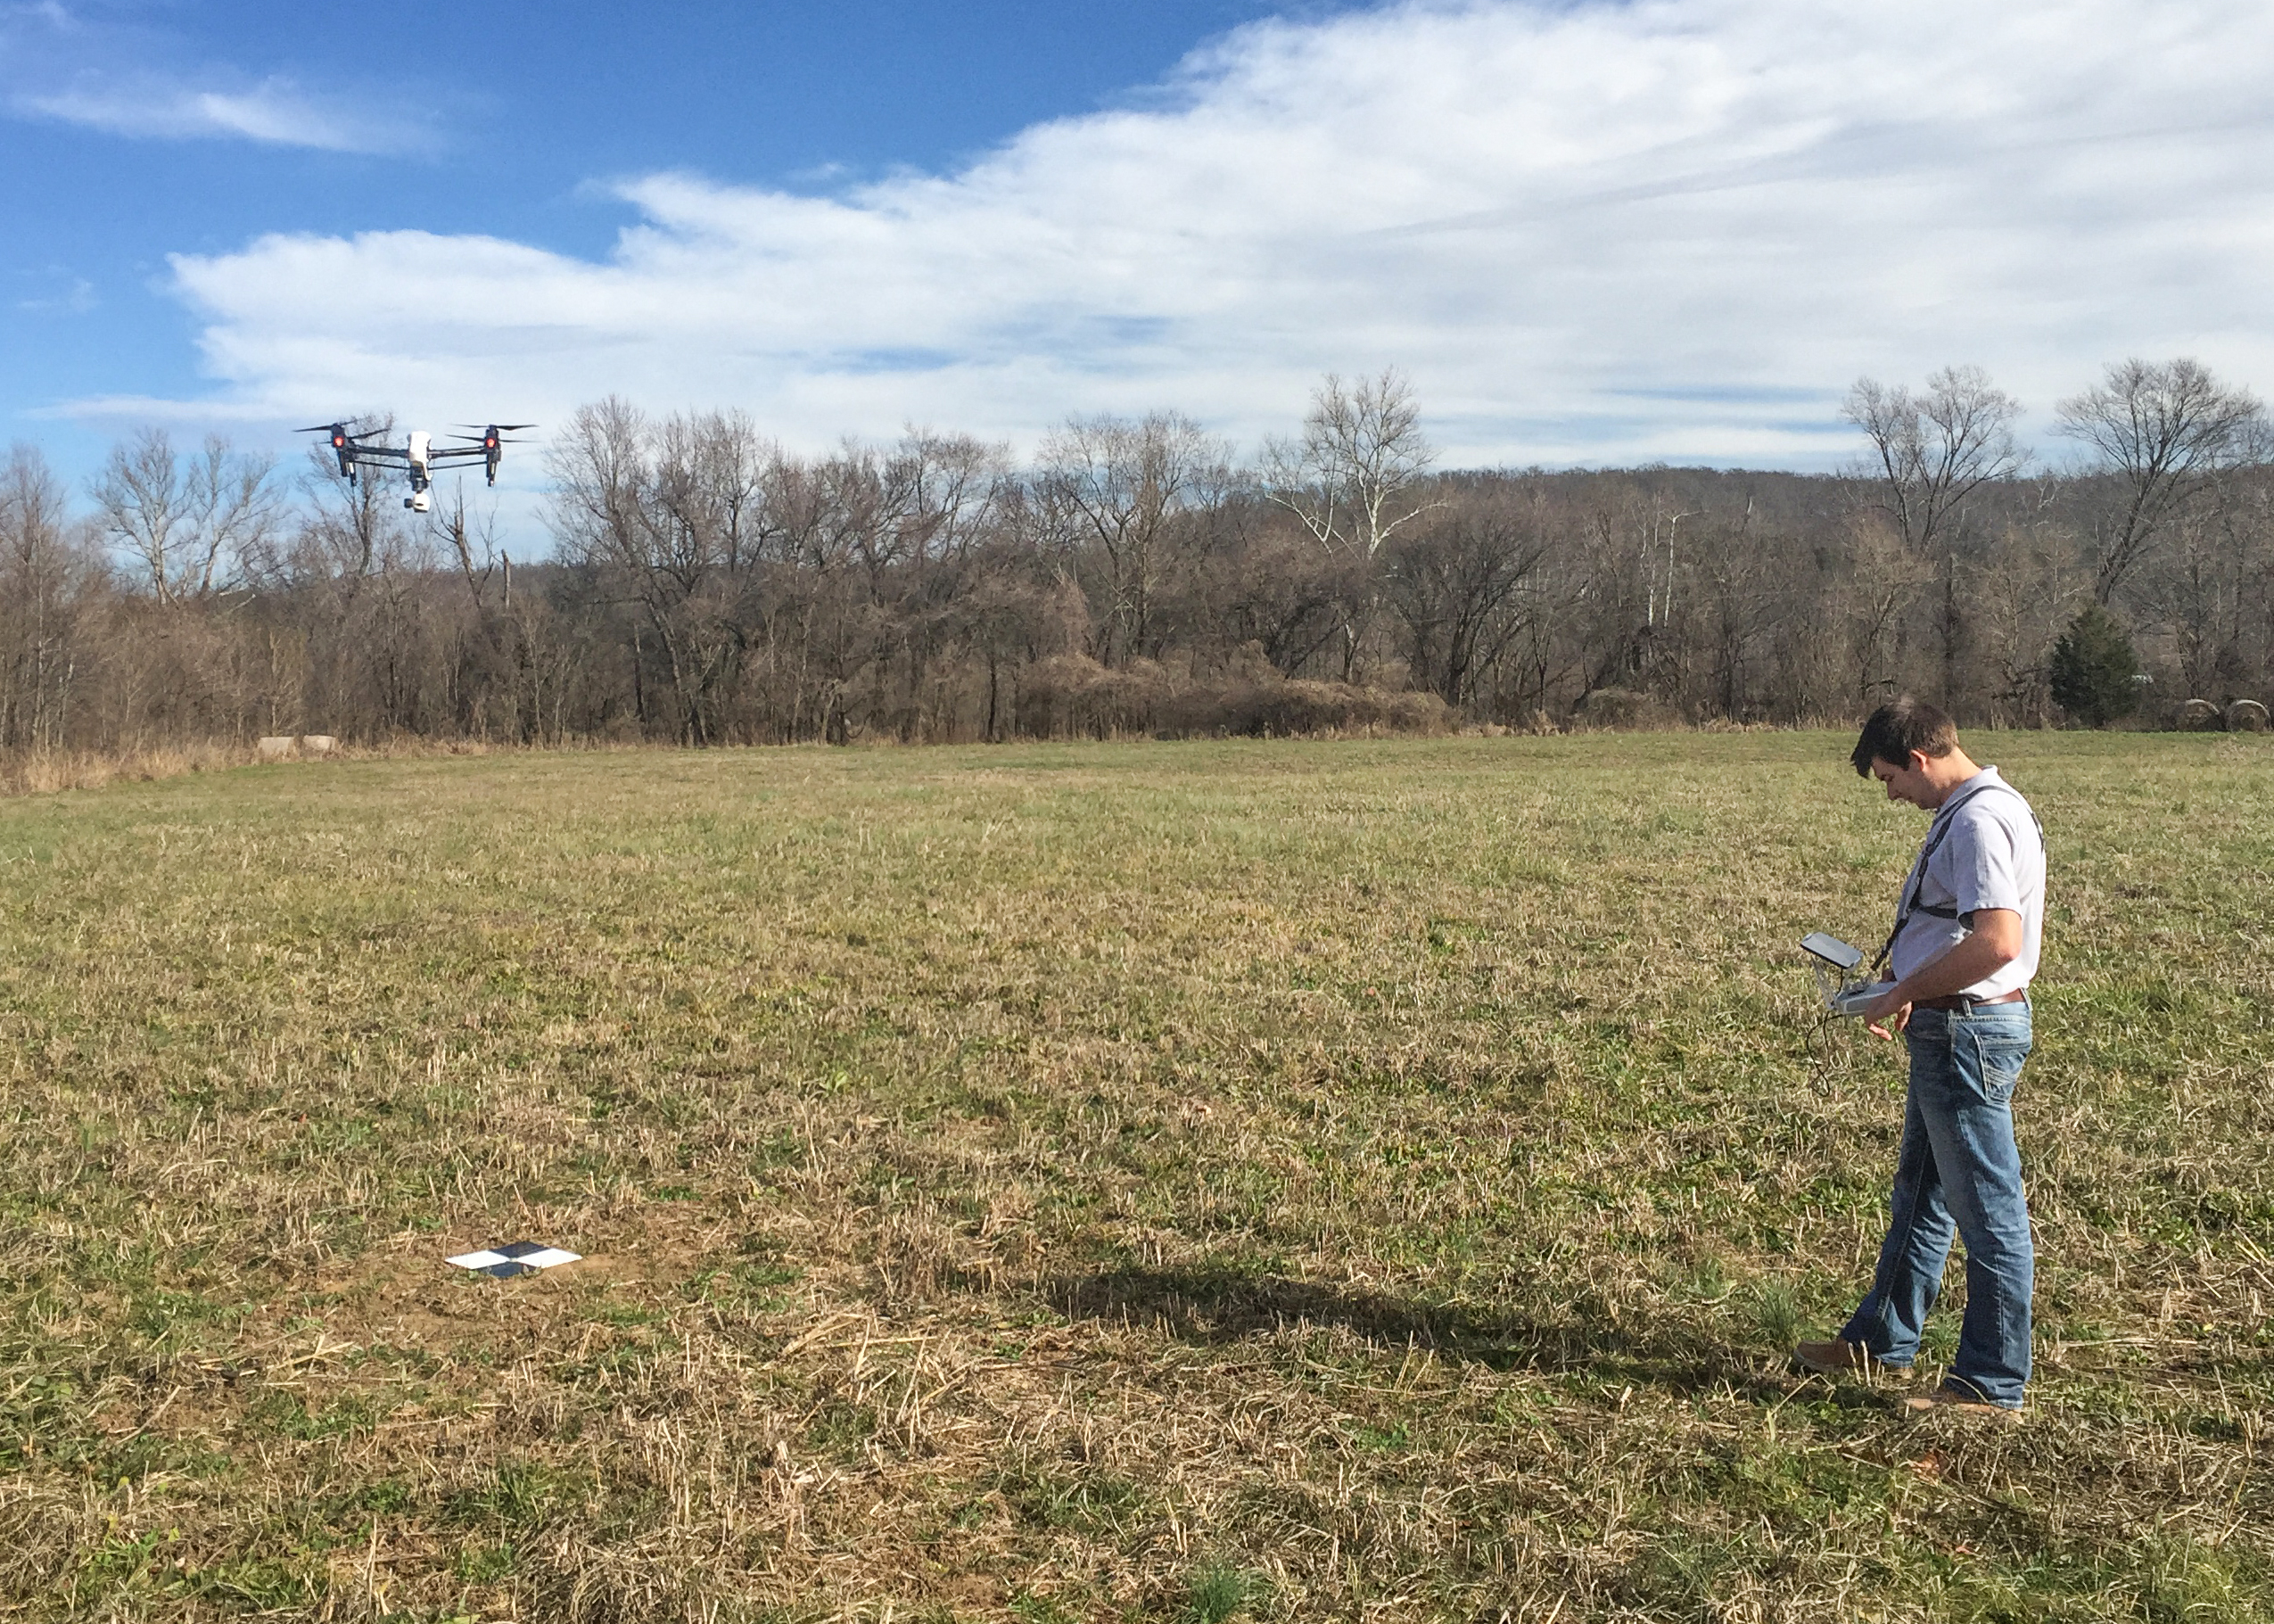 N-HansonUAStest Consulting Firm Brings Drones to Data-Collection Services